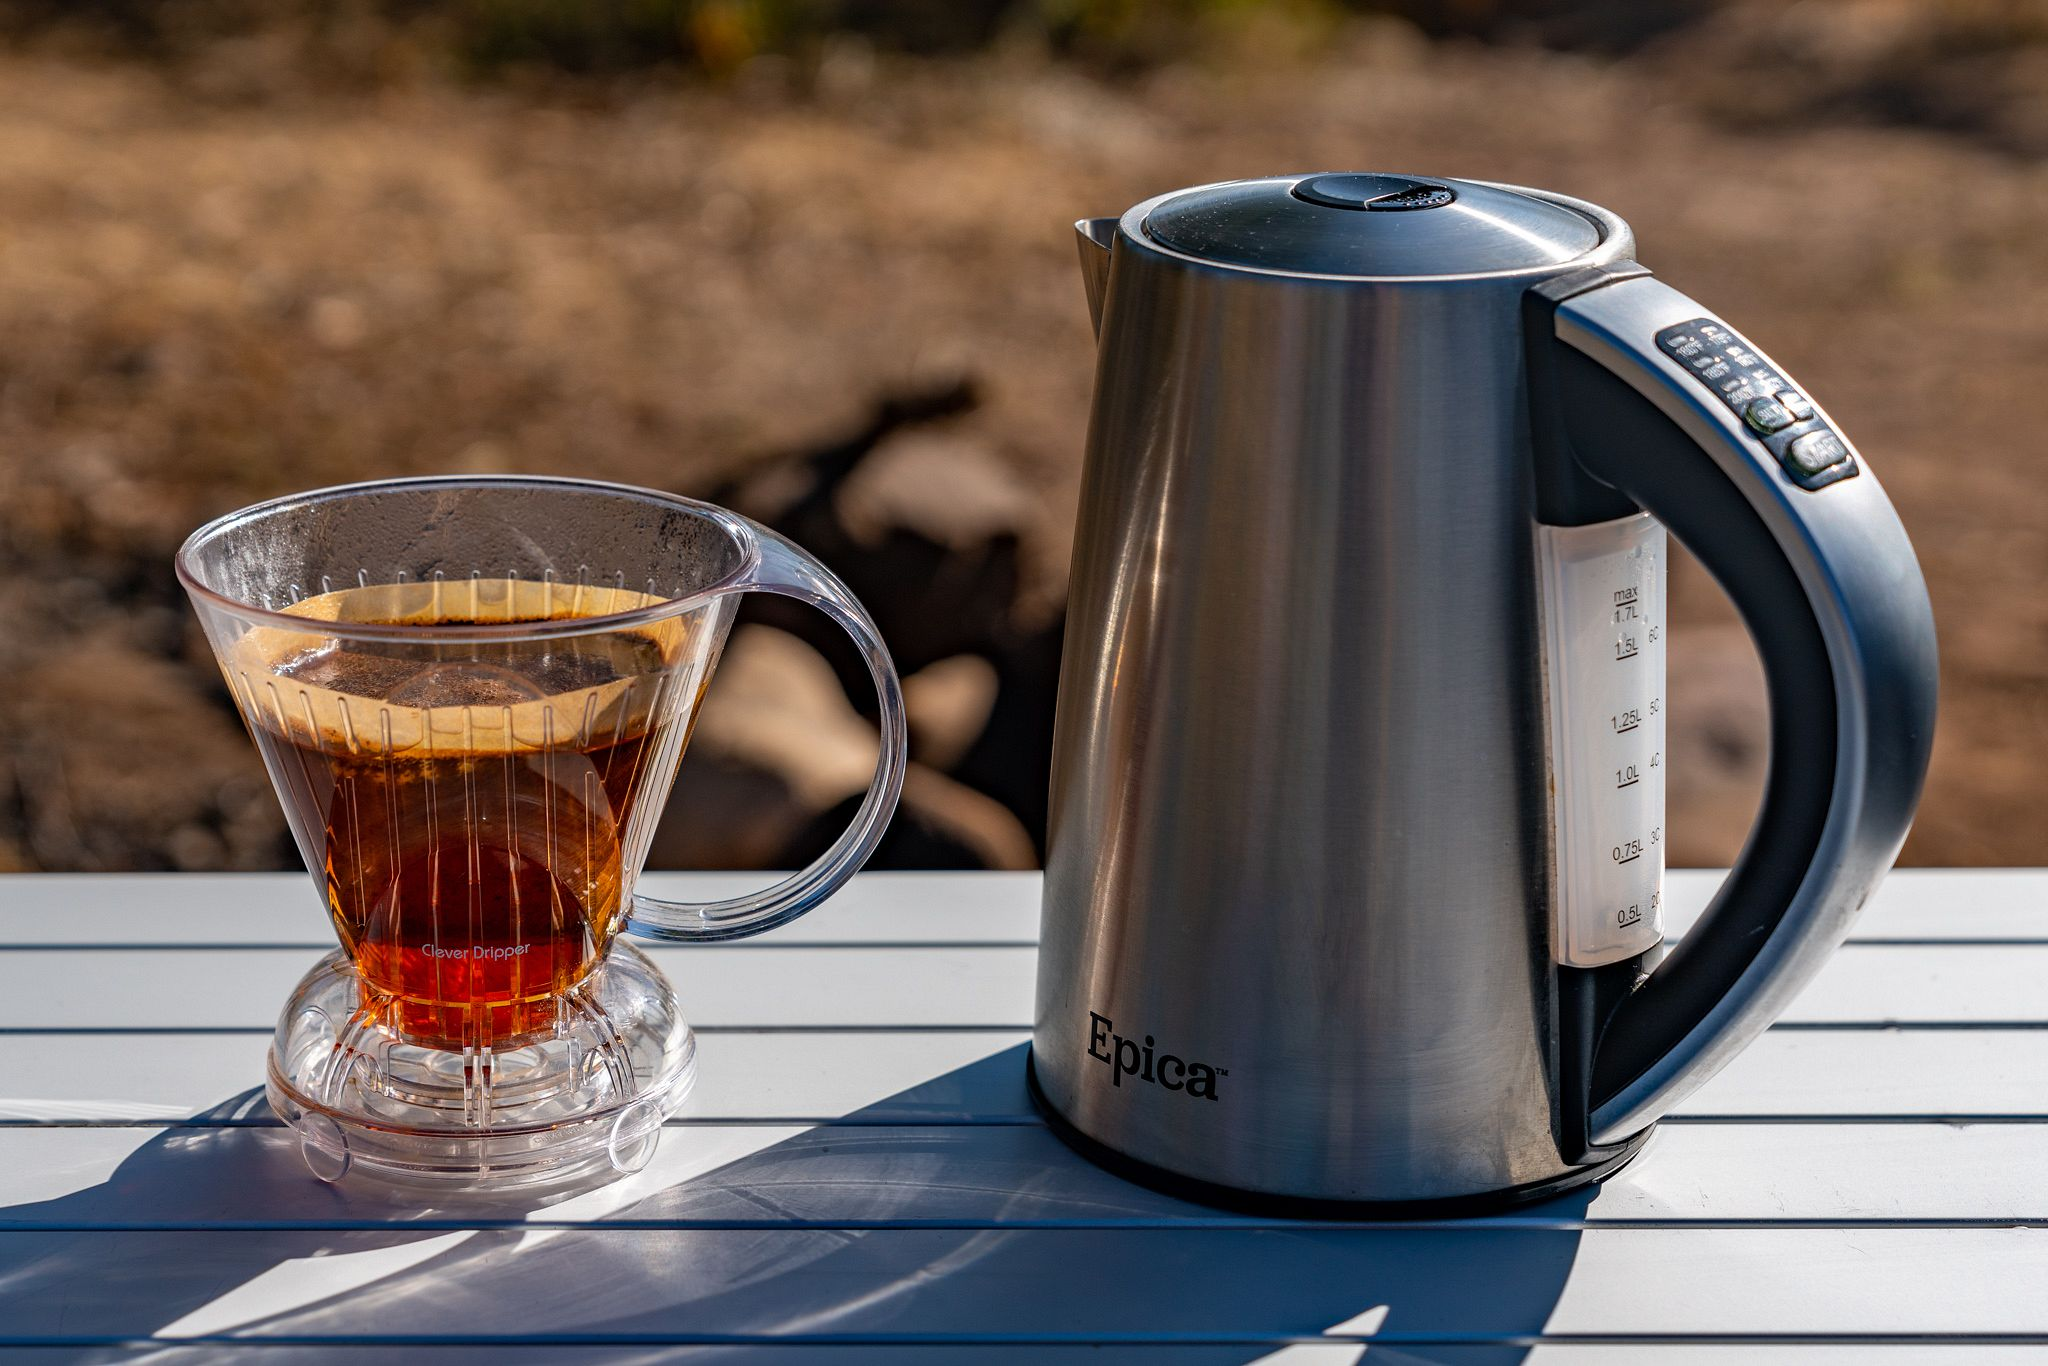 Epica Electric Kettle